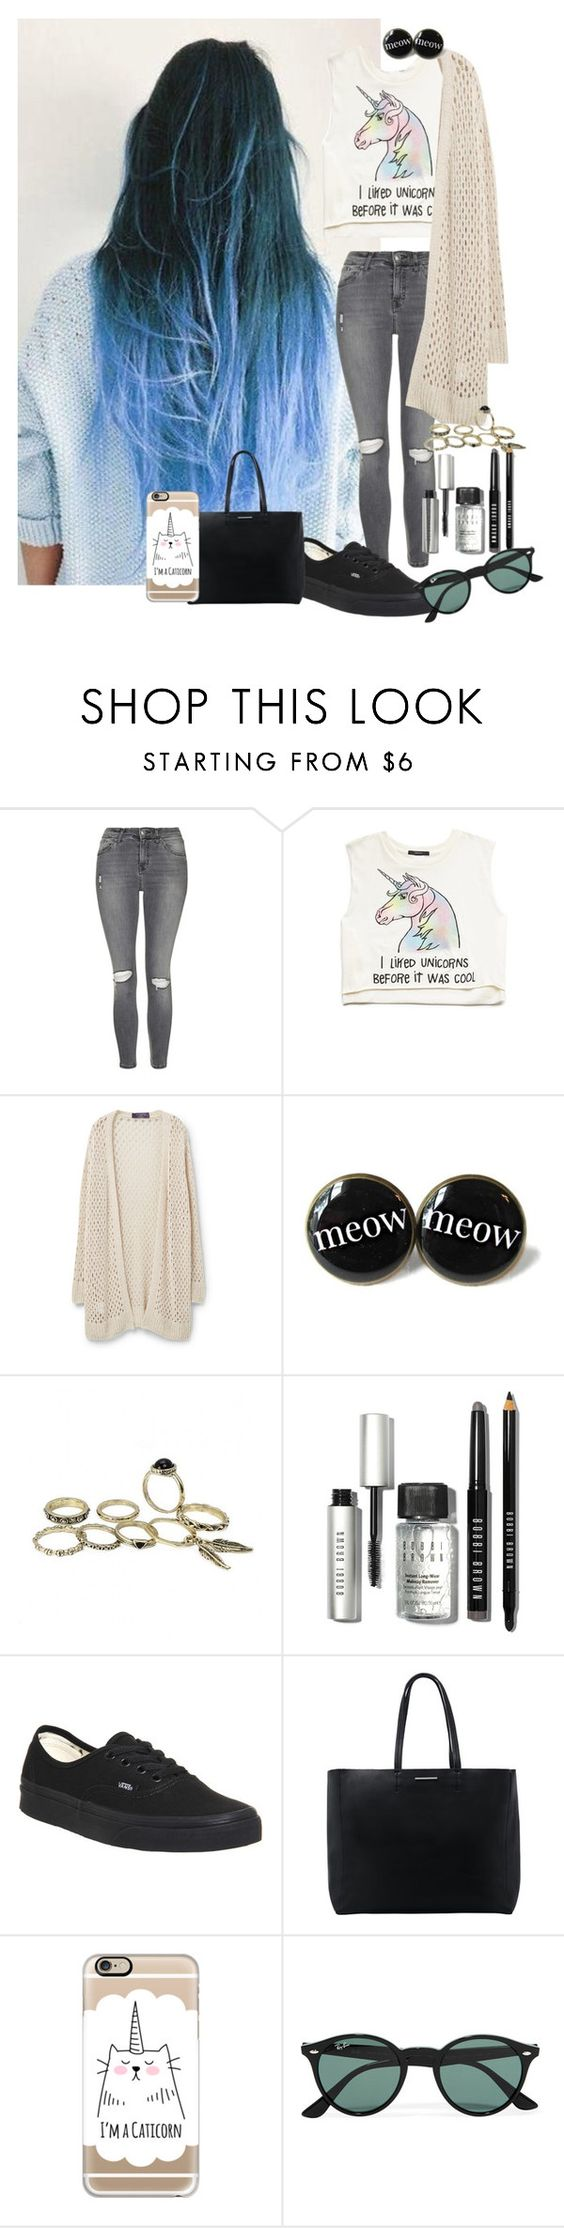 •spring day• by penguinx14 on Polyvore featuring Mode, Violeta by Mango, Forever 21, Topshop, Vans, MANGO, Casetify, Ray-Ban and Bobbi Brown Cosmetics